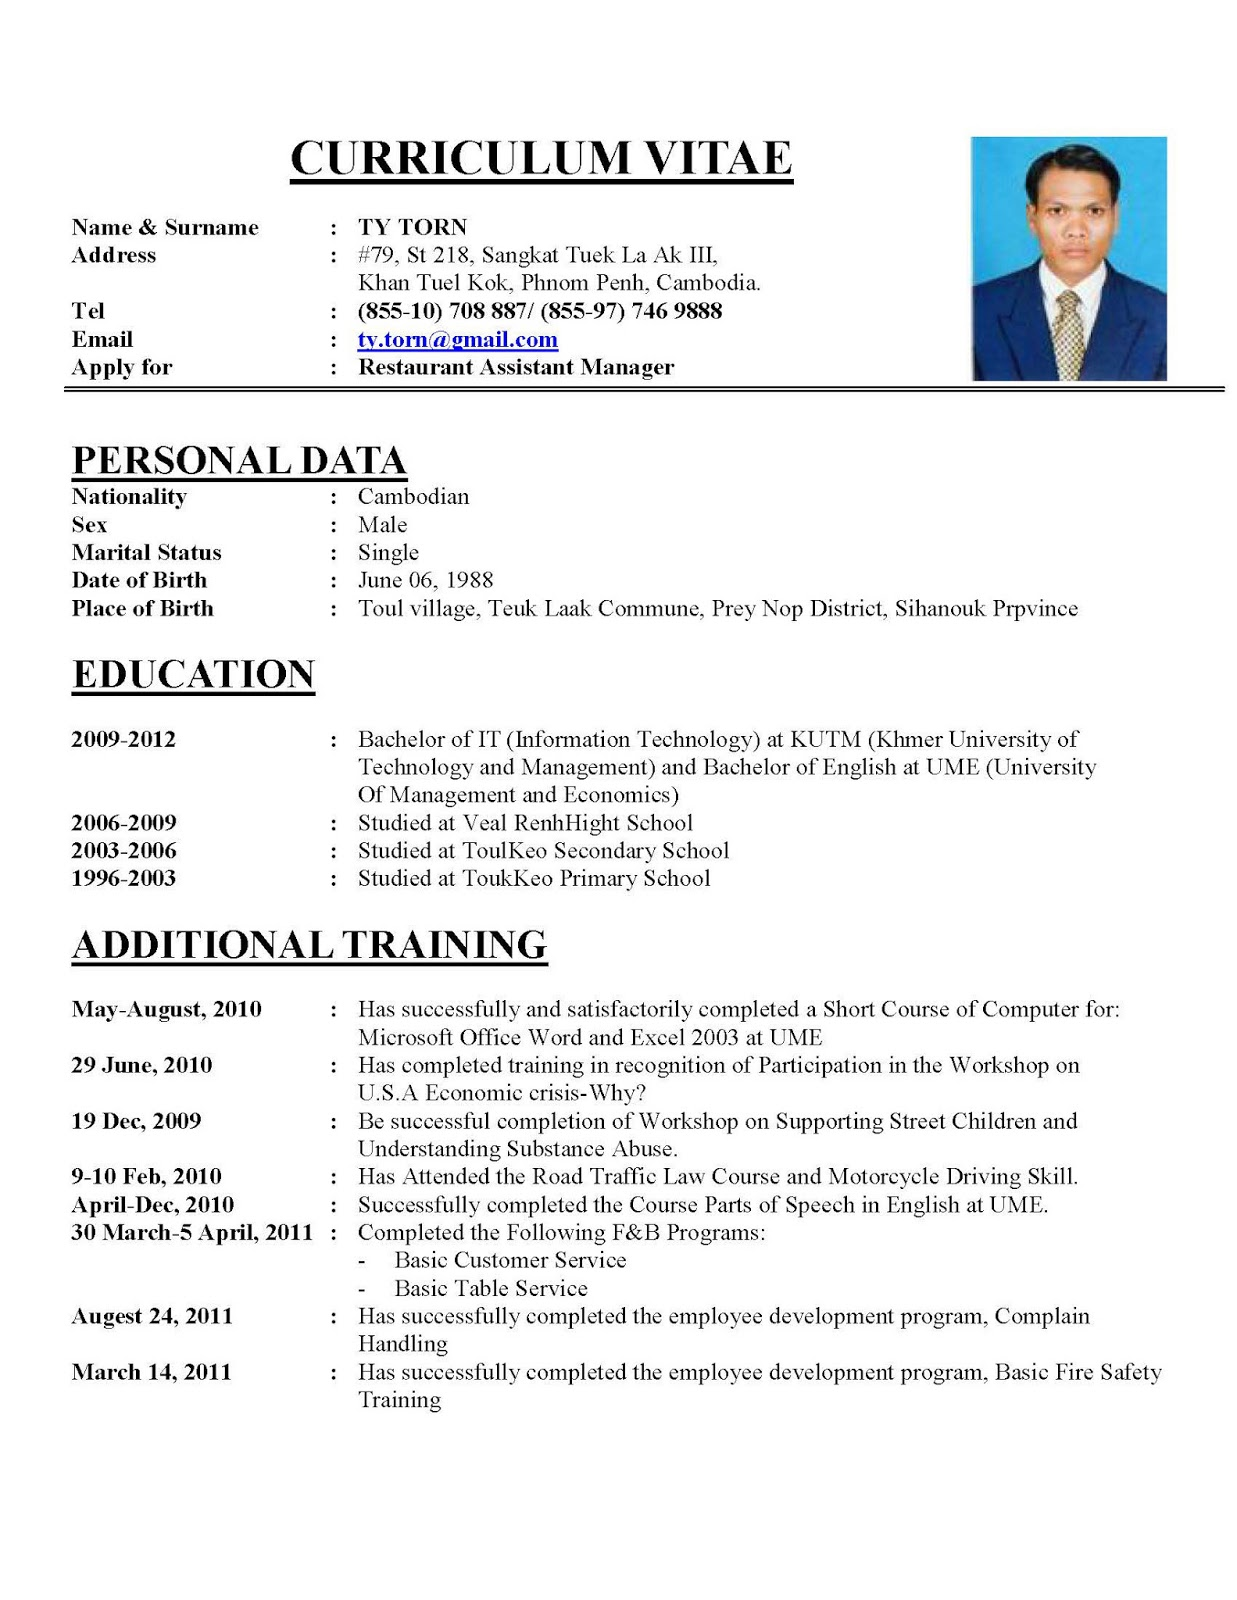 good cv headings service resume good cv headings an example of a good cv bbc cv writing headings the correct cv